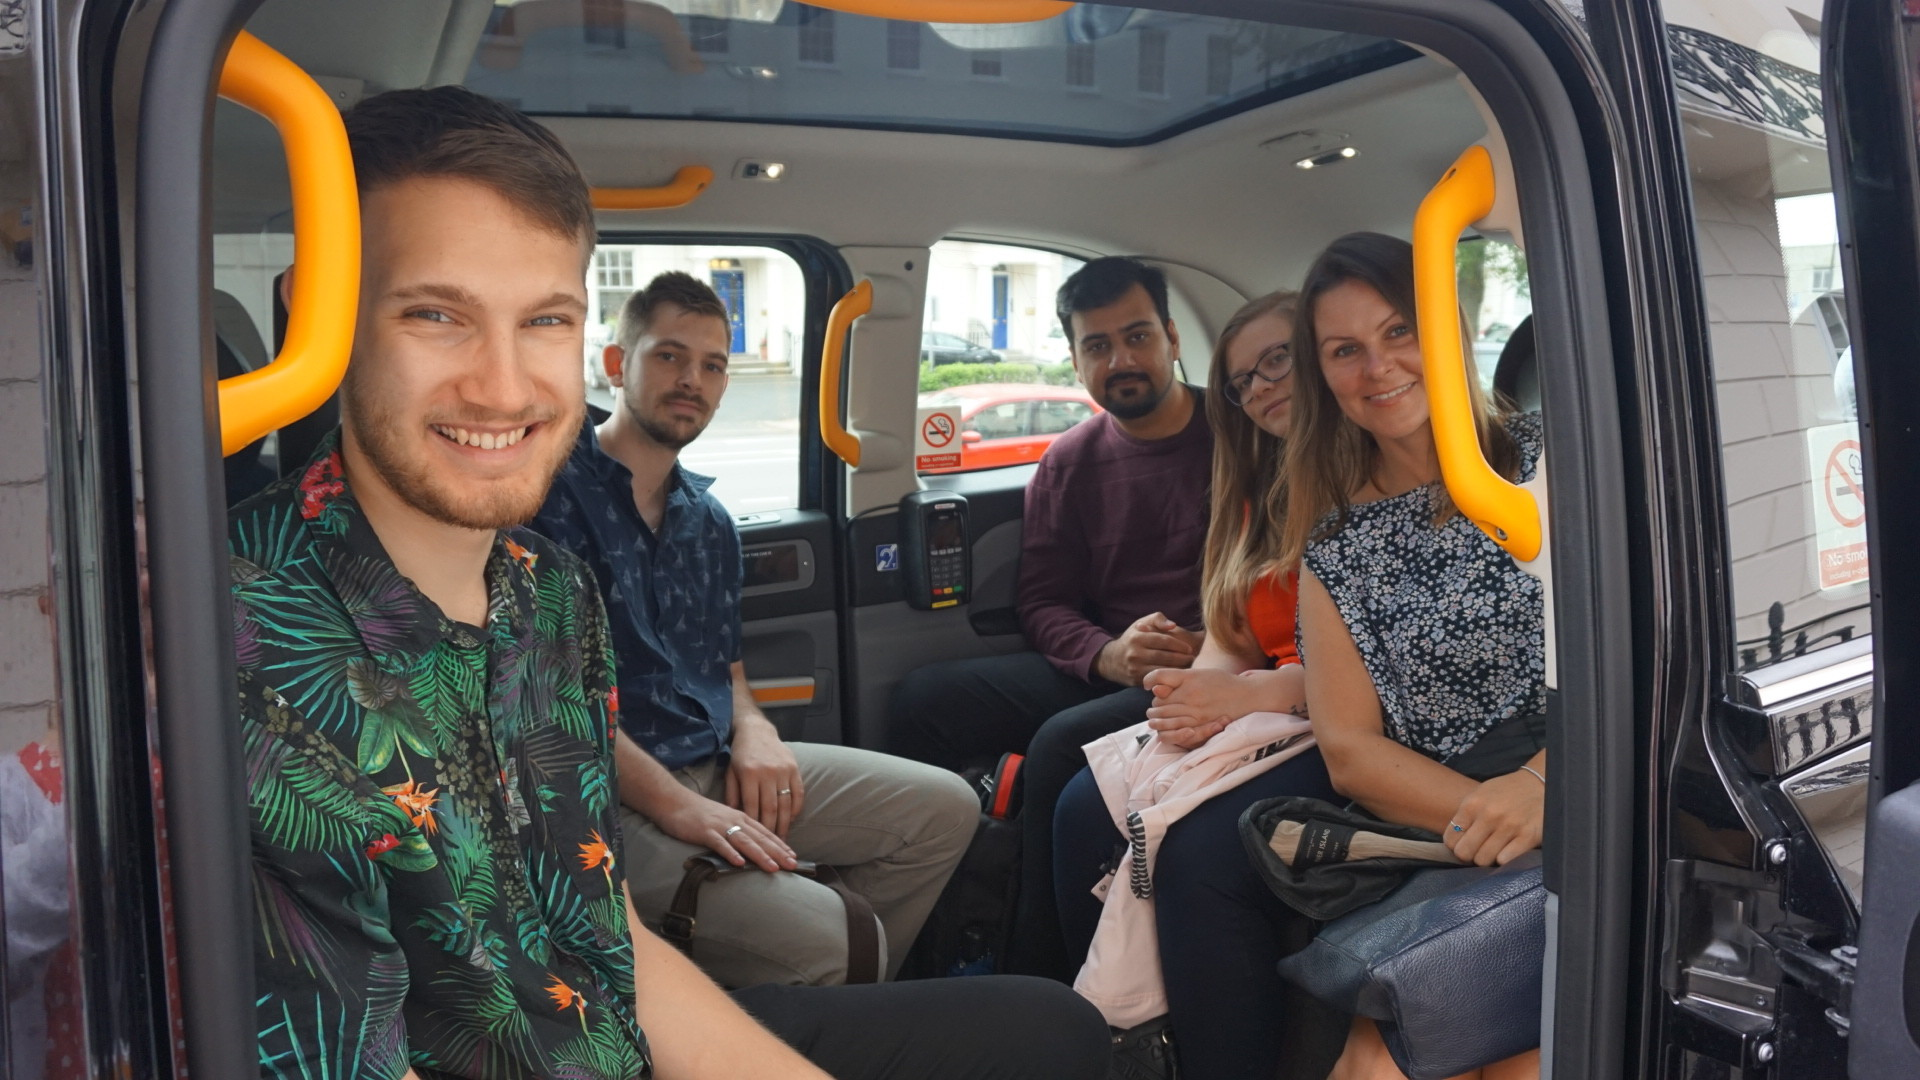 People sitting in a taxi